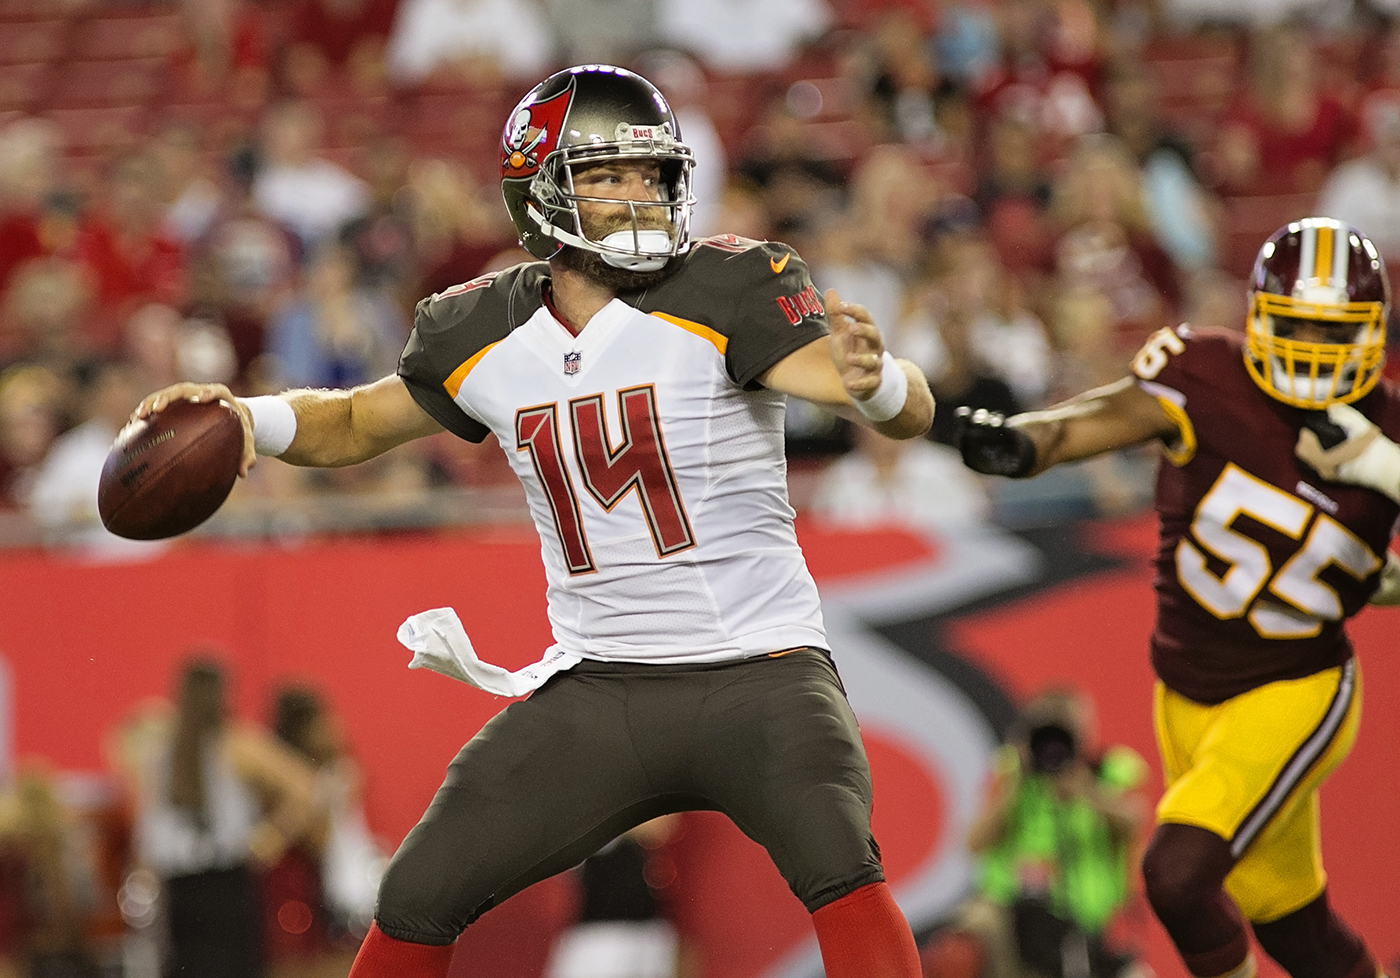 Fitzpatrick started well for the Bucs./CARMEN MANDATO